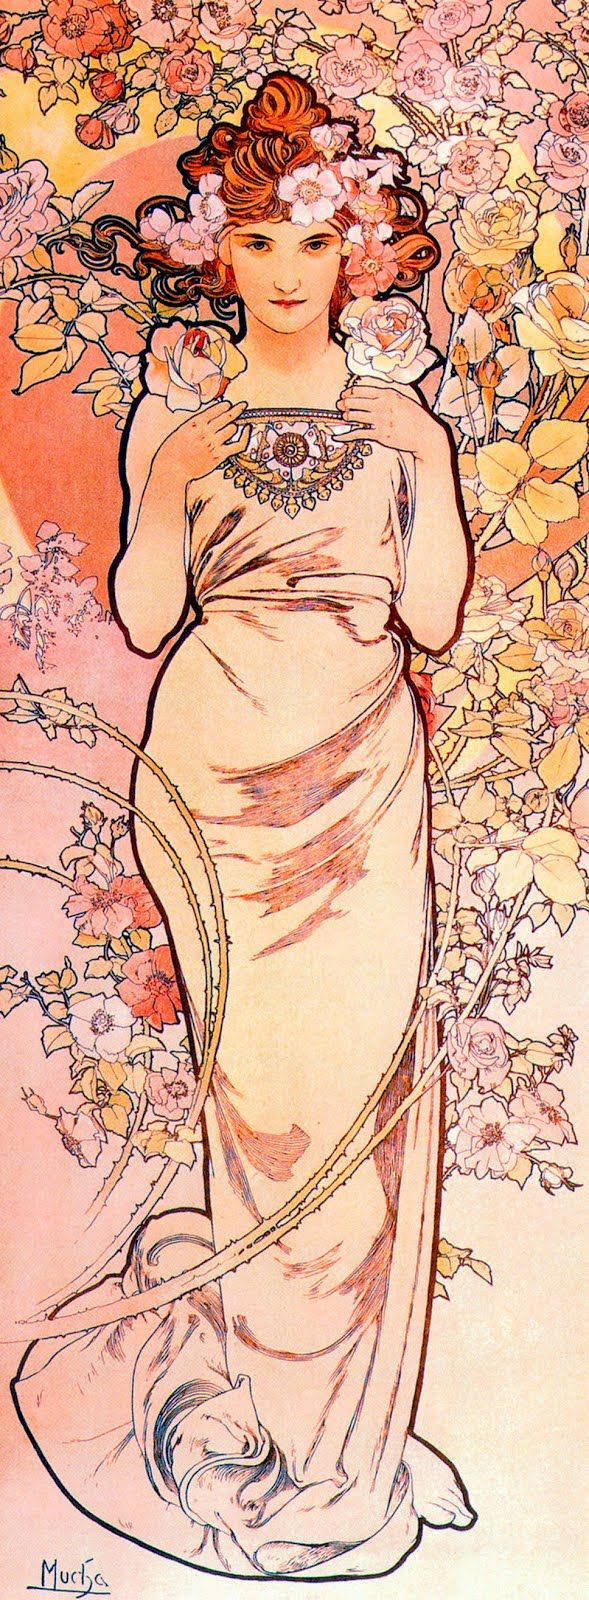 The Four Flowers: Rose by Alphonse Mucha http://www.muchafoundation.org/gallery/themes/theme/art-posters/object/272